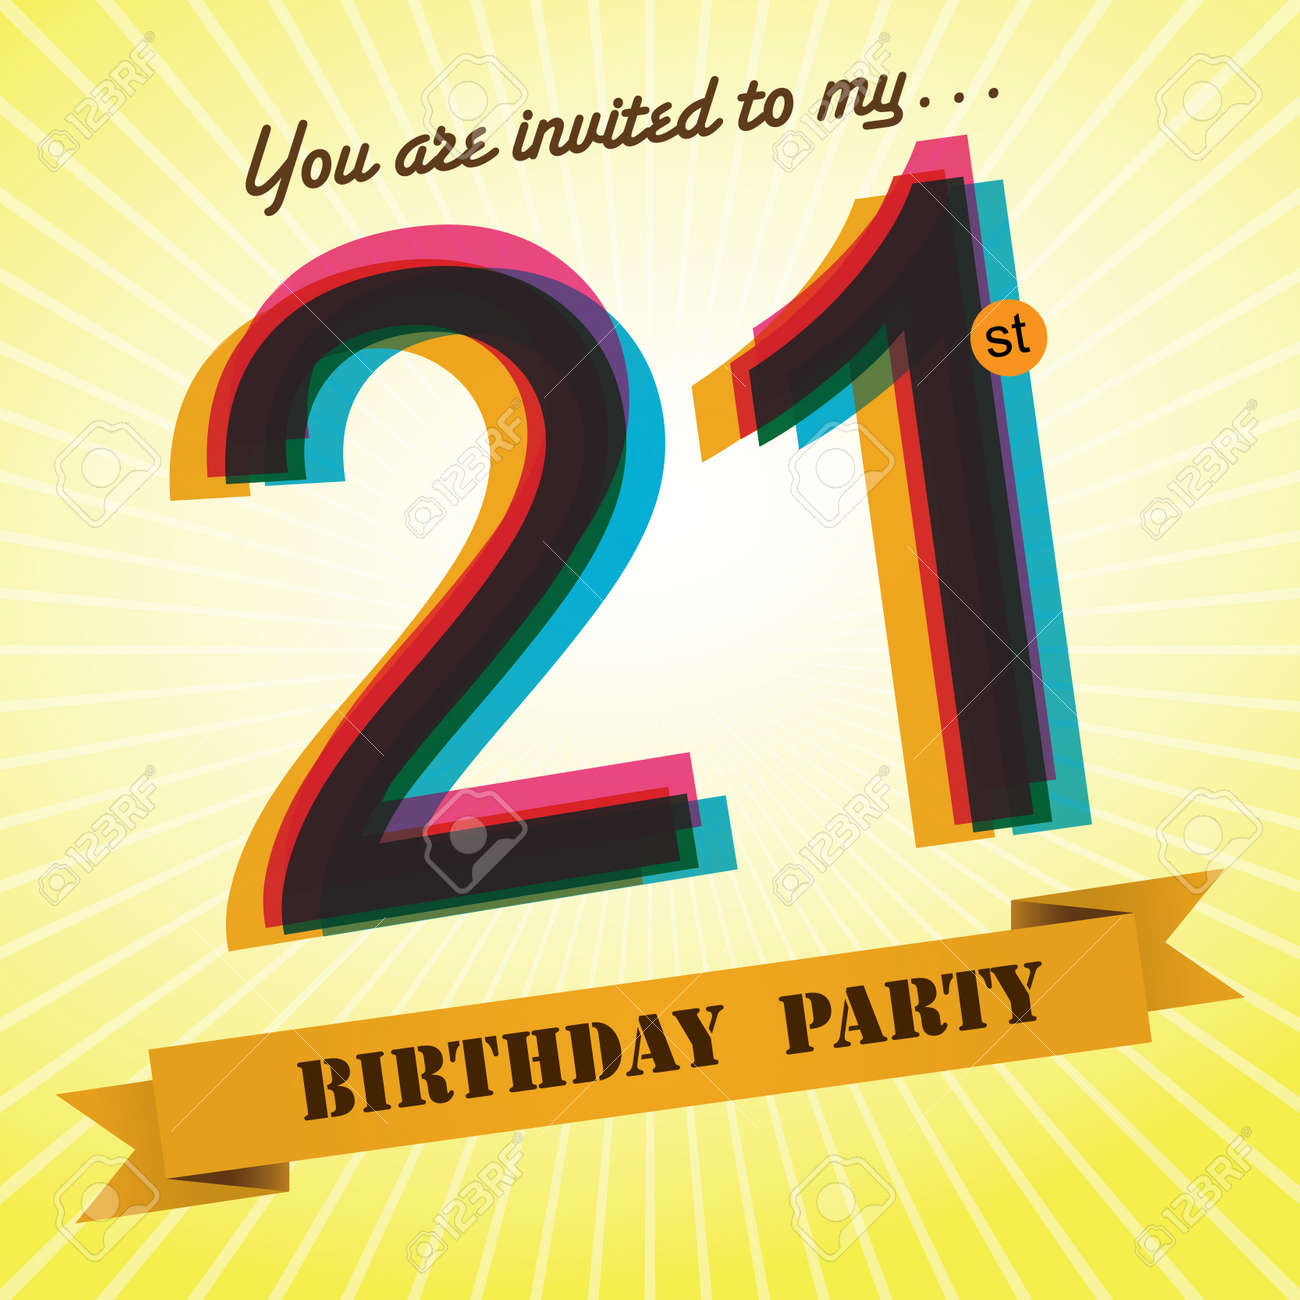 21st Birthday Party Invite Template Design Retro Style Vector Royalty Free Cliparts Vectors And Stock Illustration Image 27373609